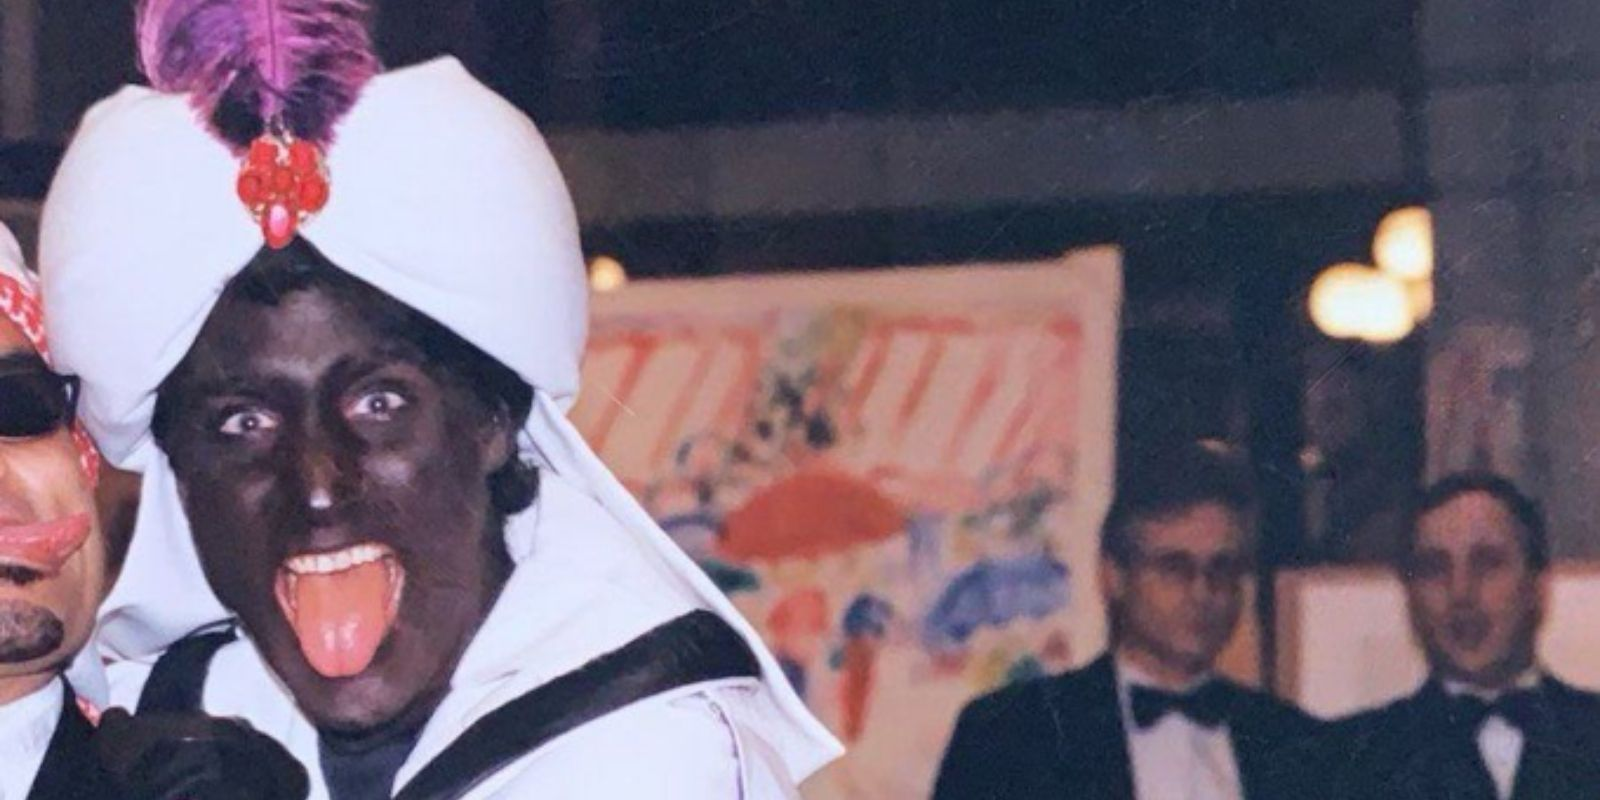 BREAKING: Previously unseen photo of Justin Trudeau in blackface emerges on eve of election night